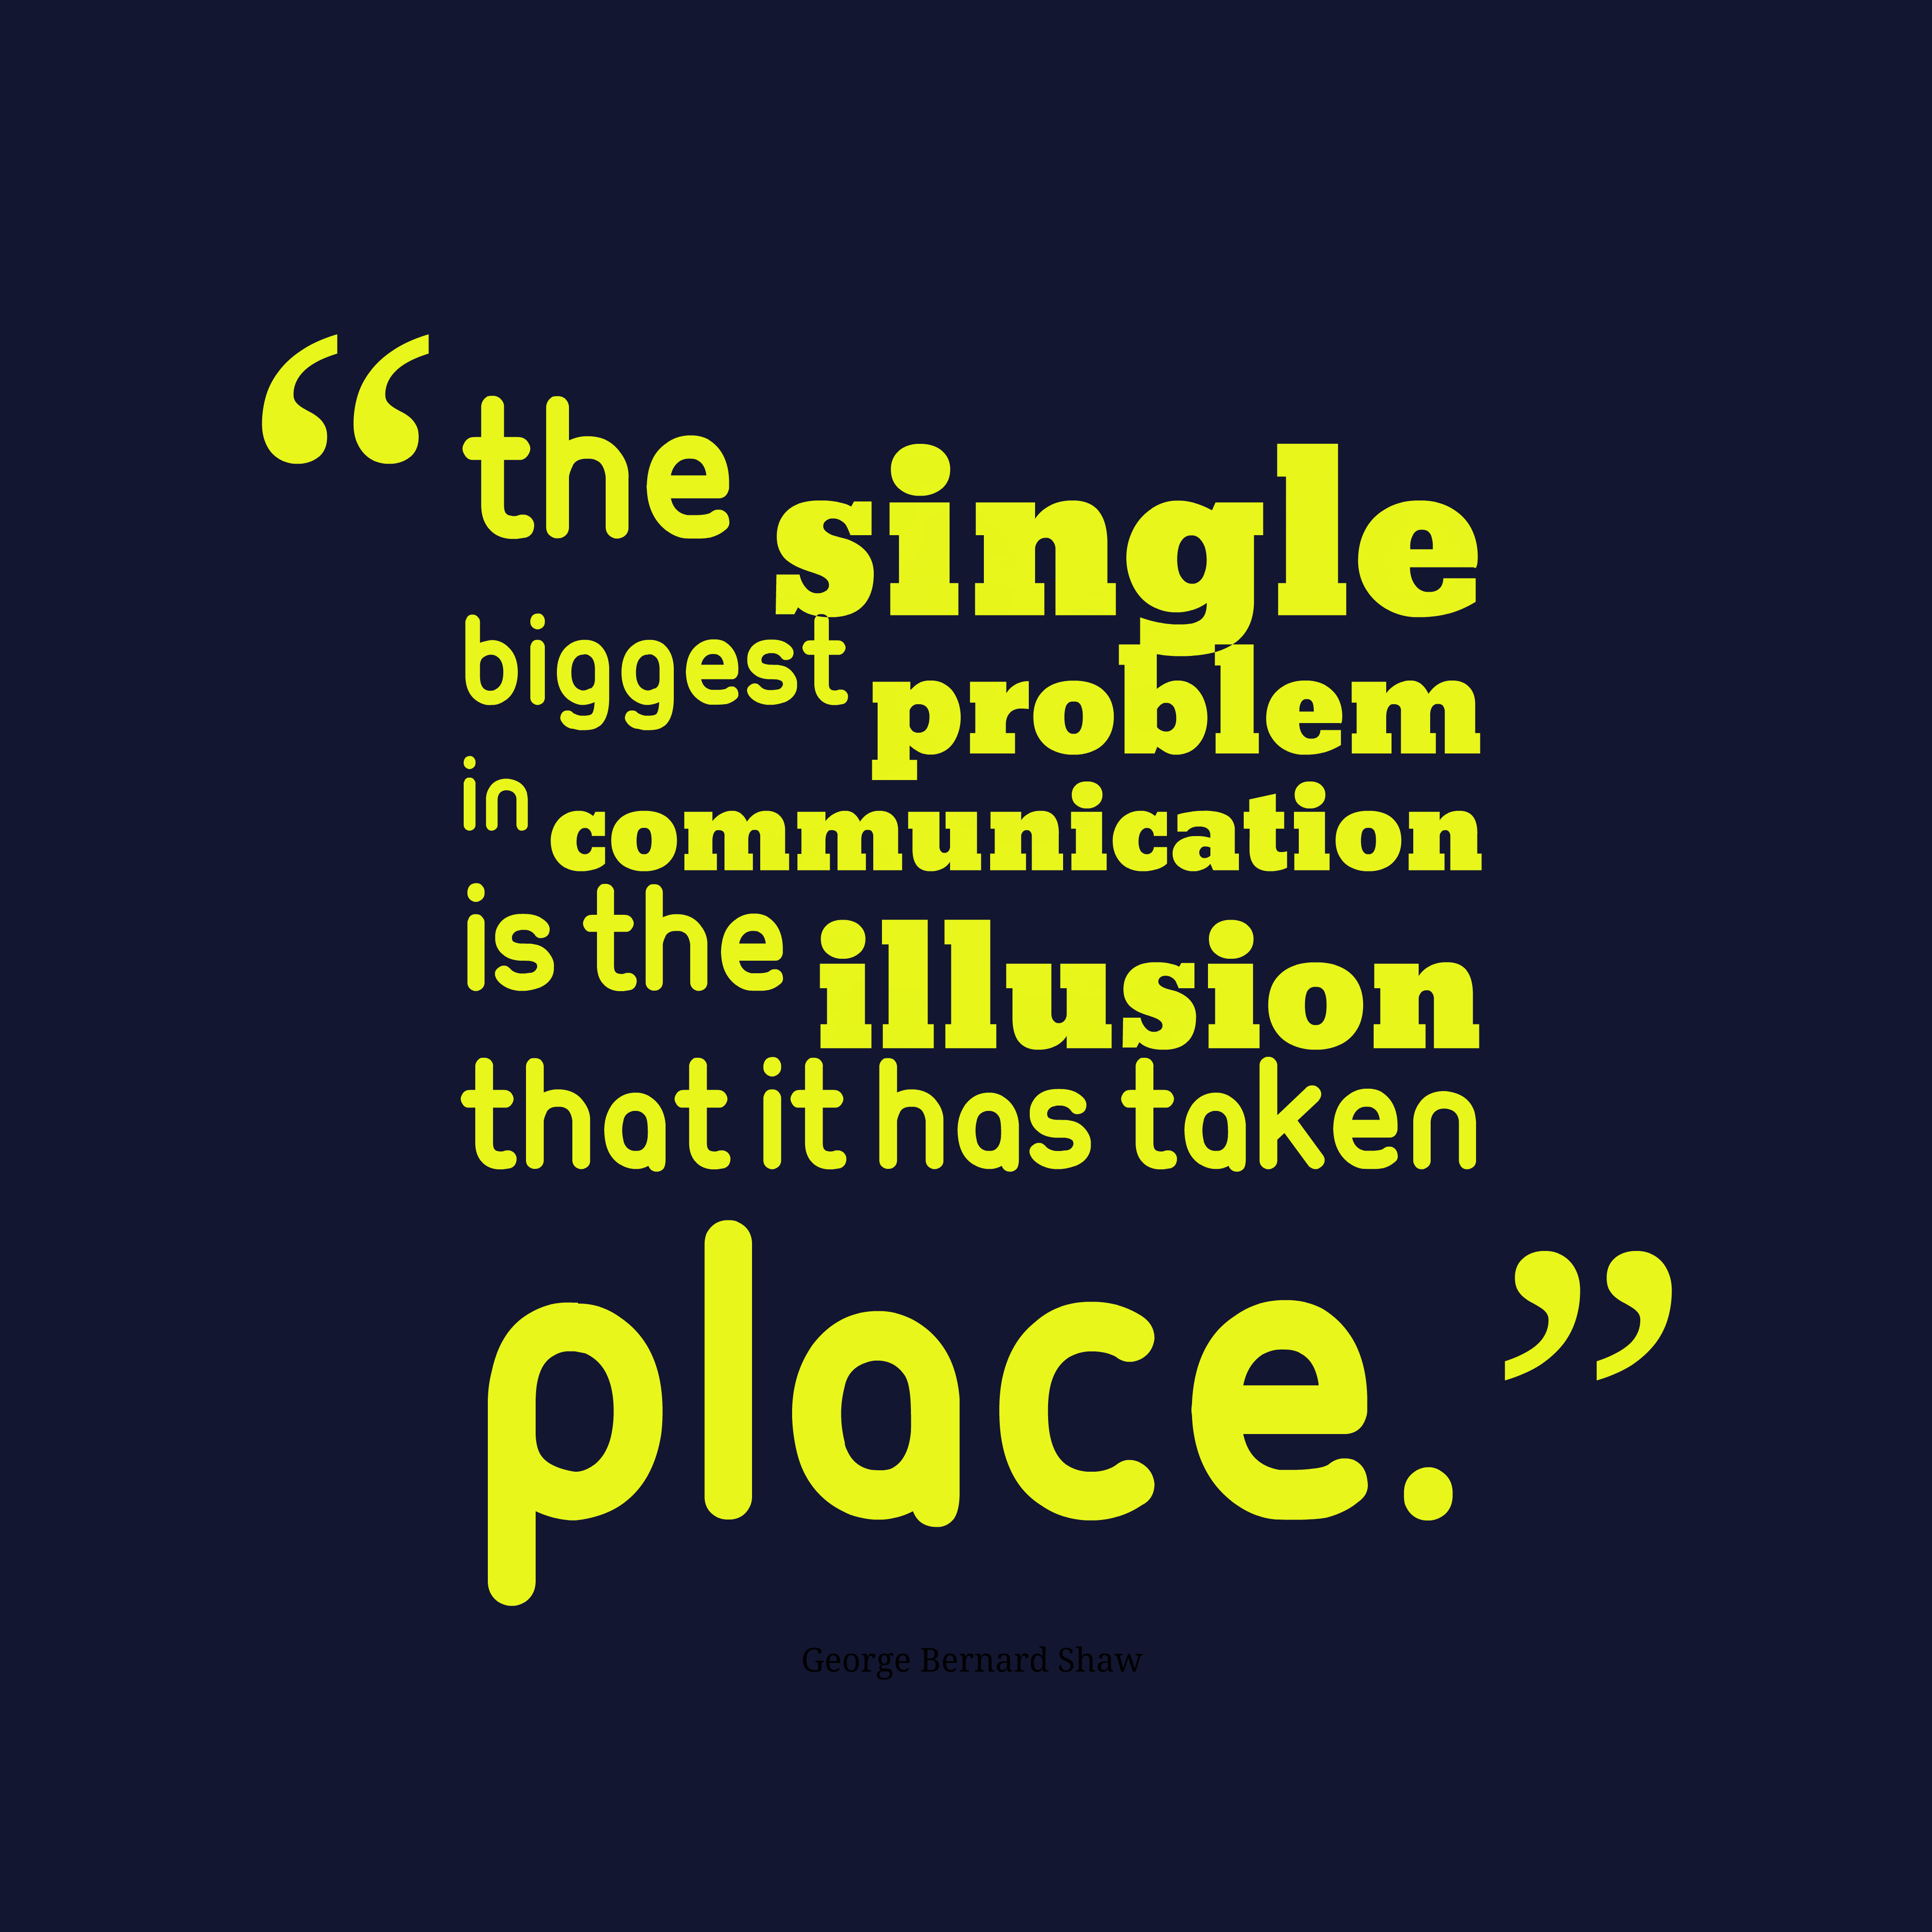 Quotes image of The single biggest problem in communication is the illusion that it has taken place.